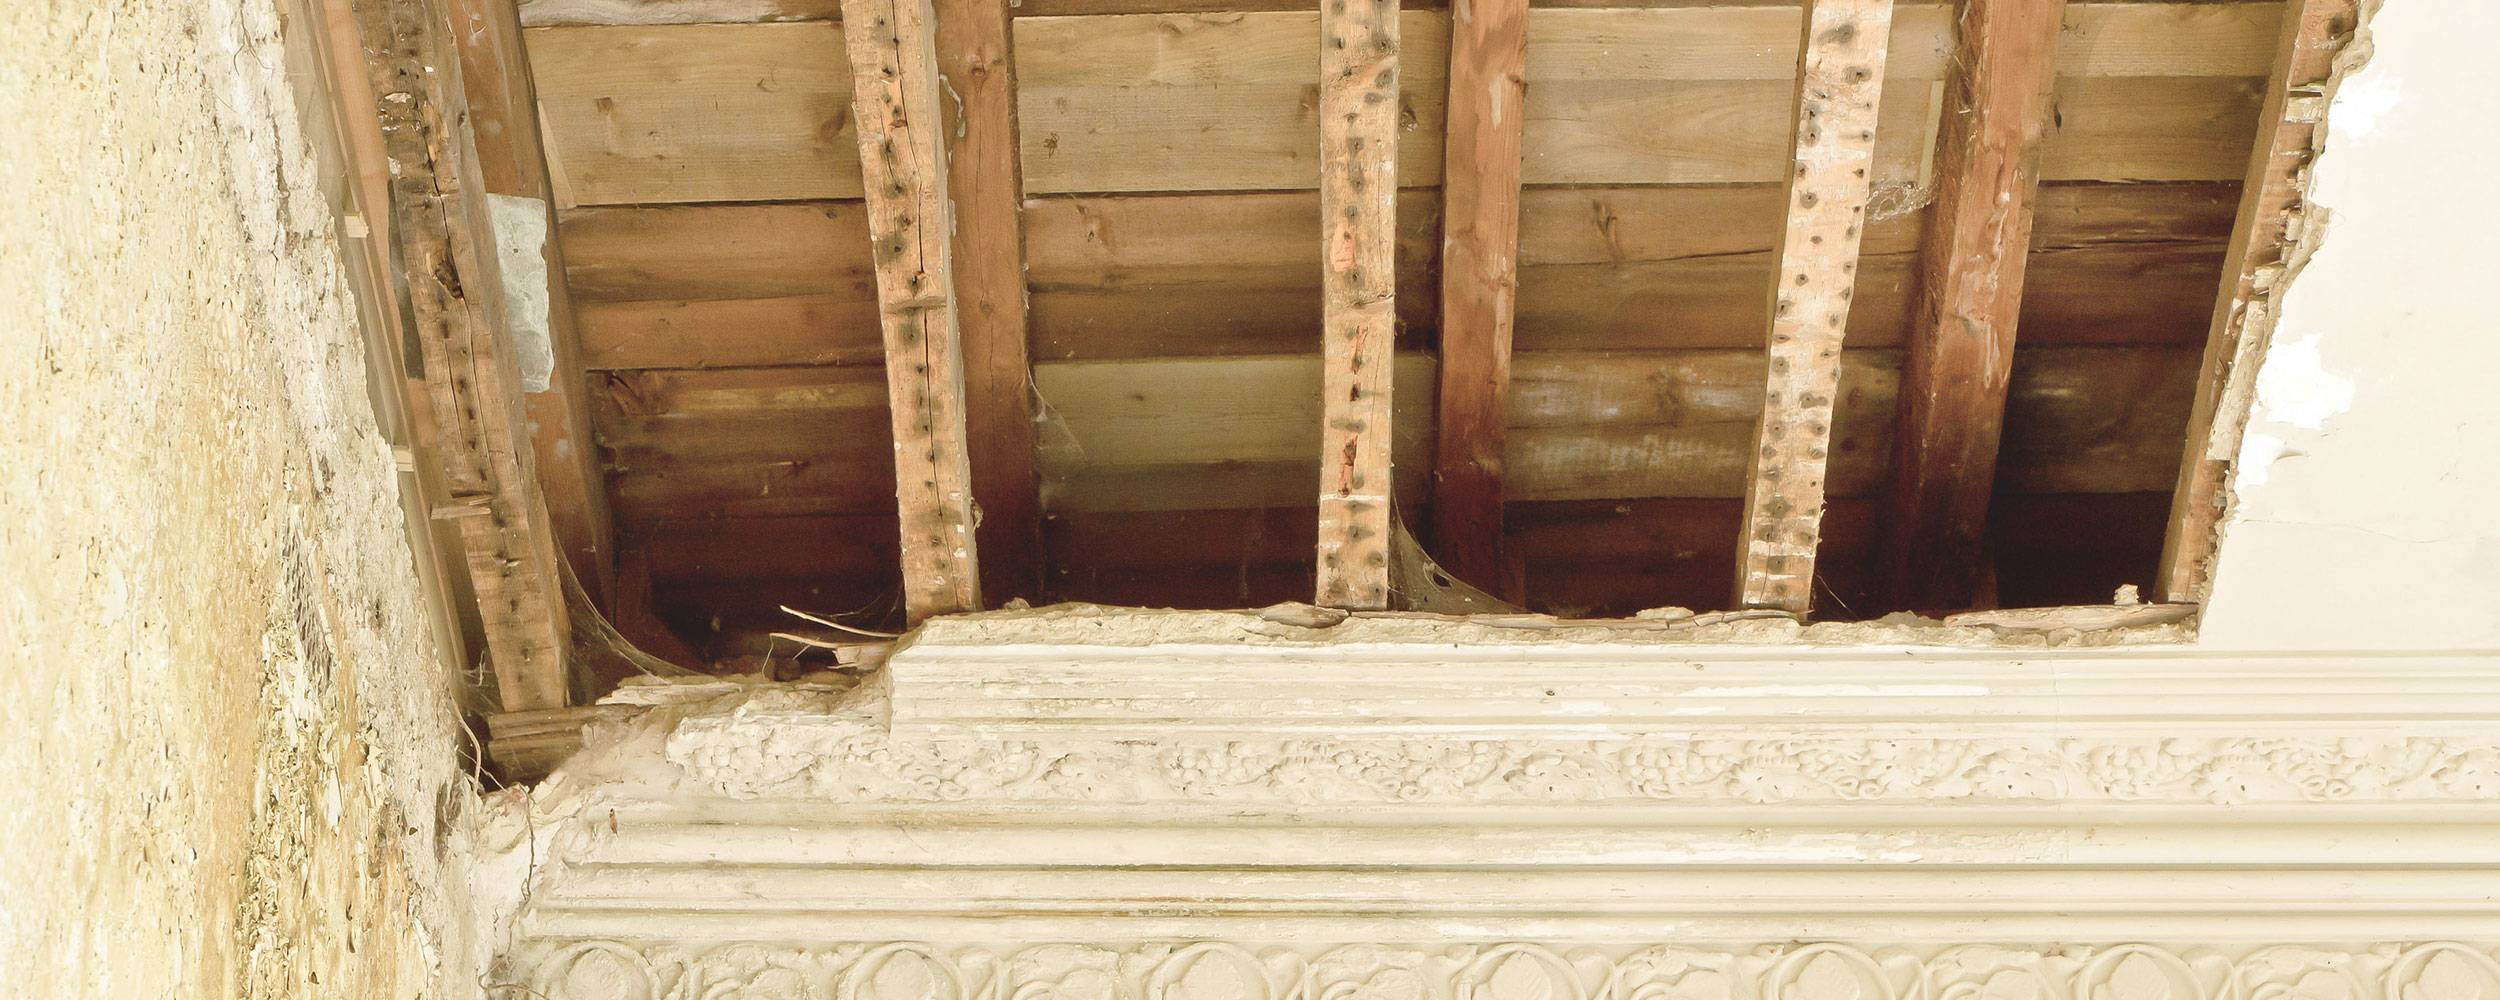 ceiling damage due to a damp problem